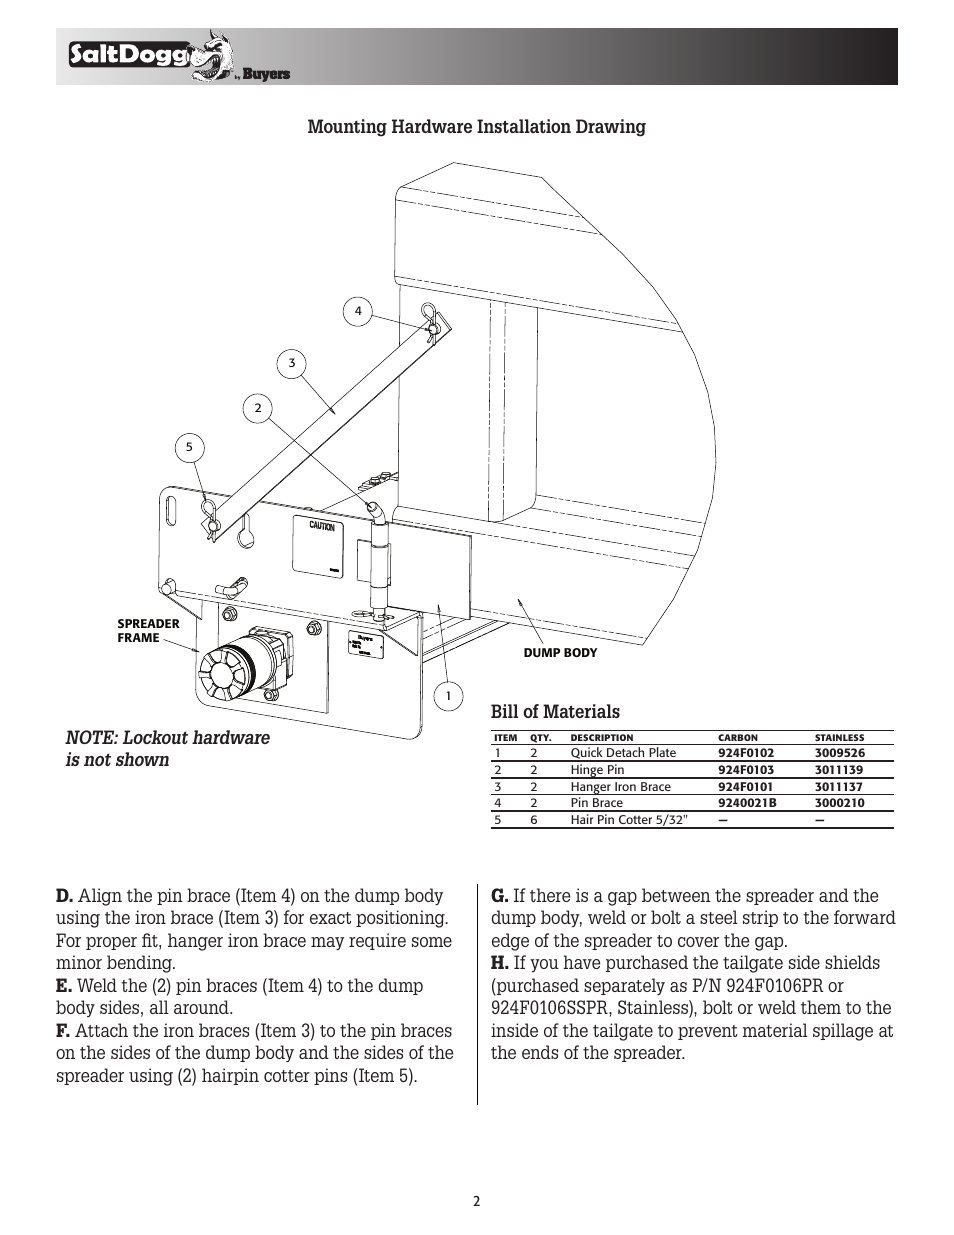 tailgate salt spreader wiring diagram wiring library 92 toyota corolla wiring diagram saltdogg 92426ssa under tailgate spreader user manual page 2 8